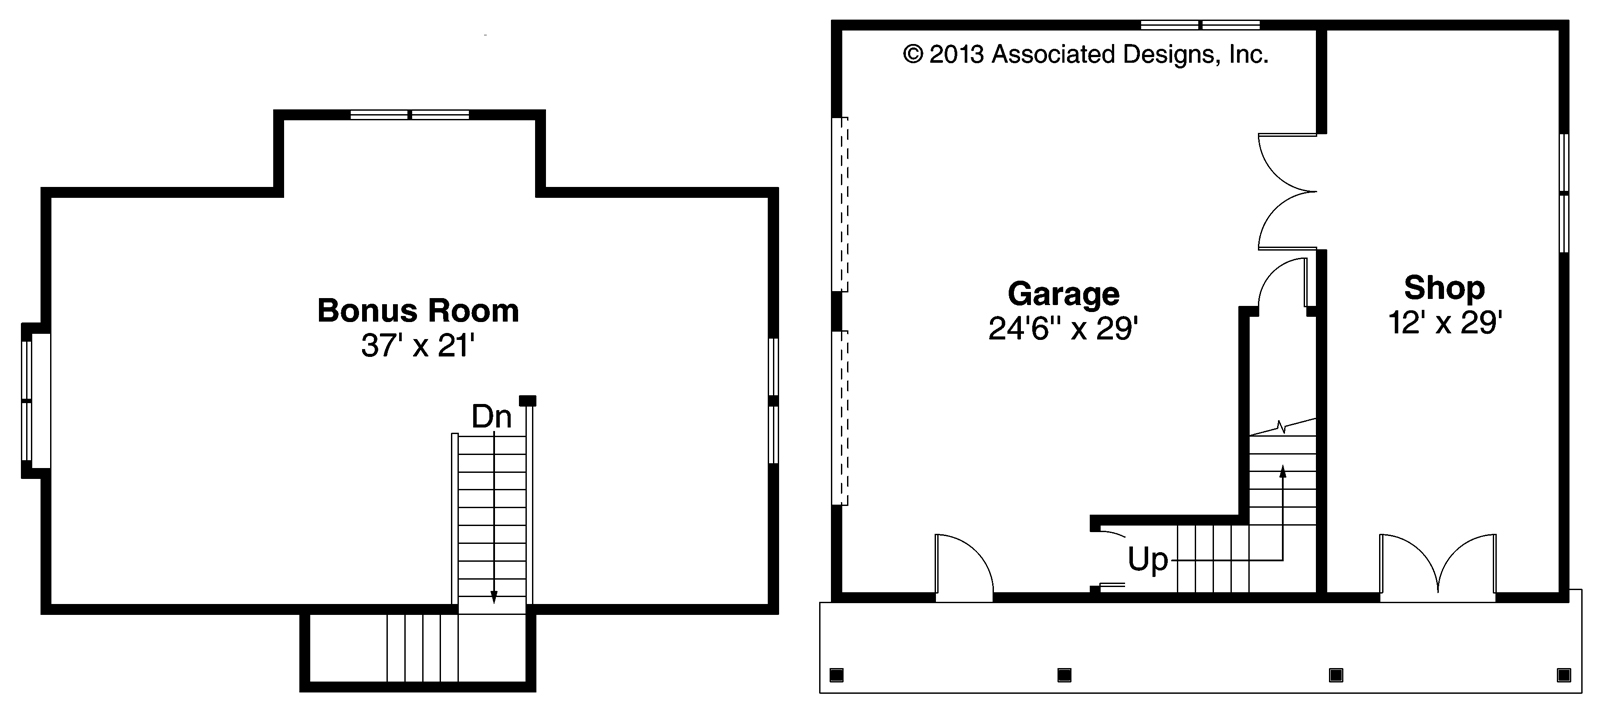 Garage plans with bonus room famin for One story house plans with bonus room above garage